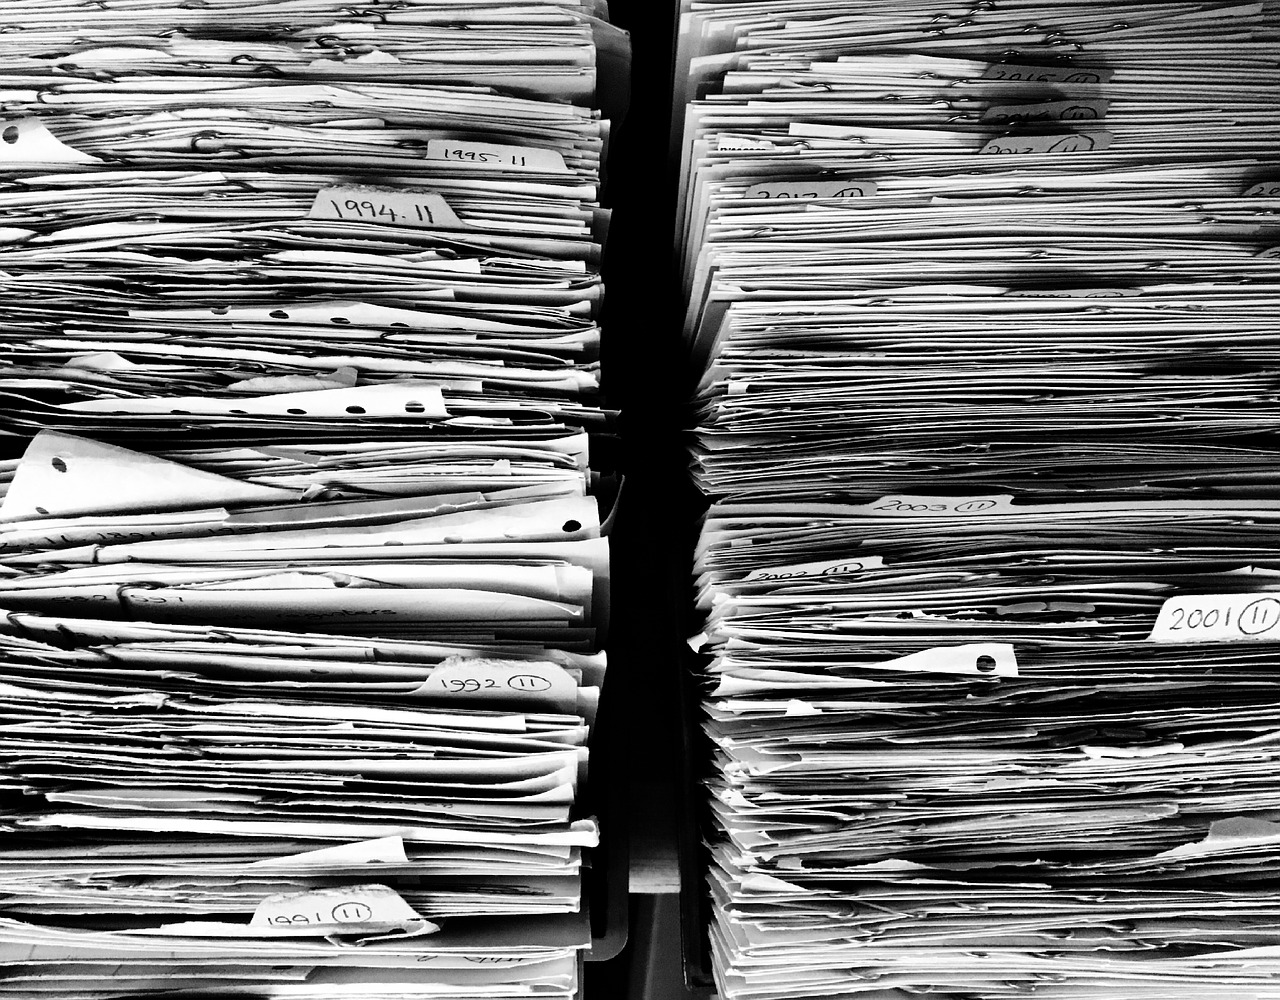 2 huge stacks of papers showing next pre-listing tip for sellers and importance of having all paperwork ready.